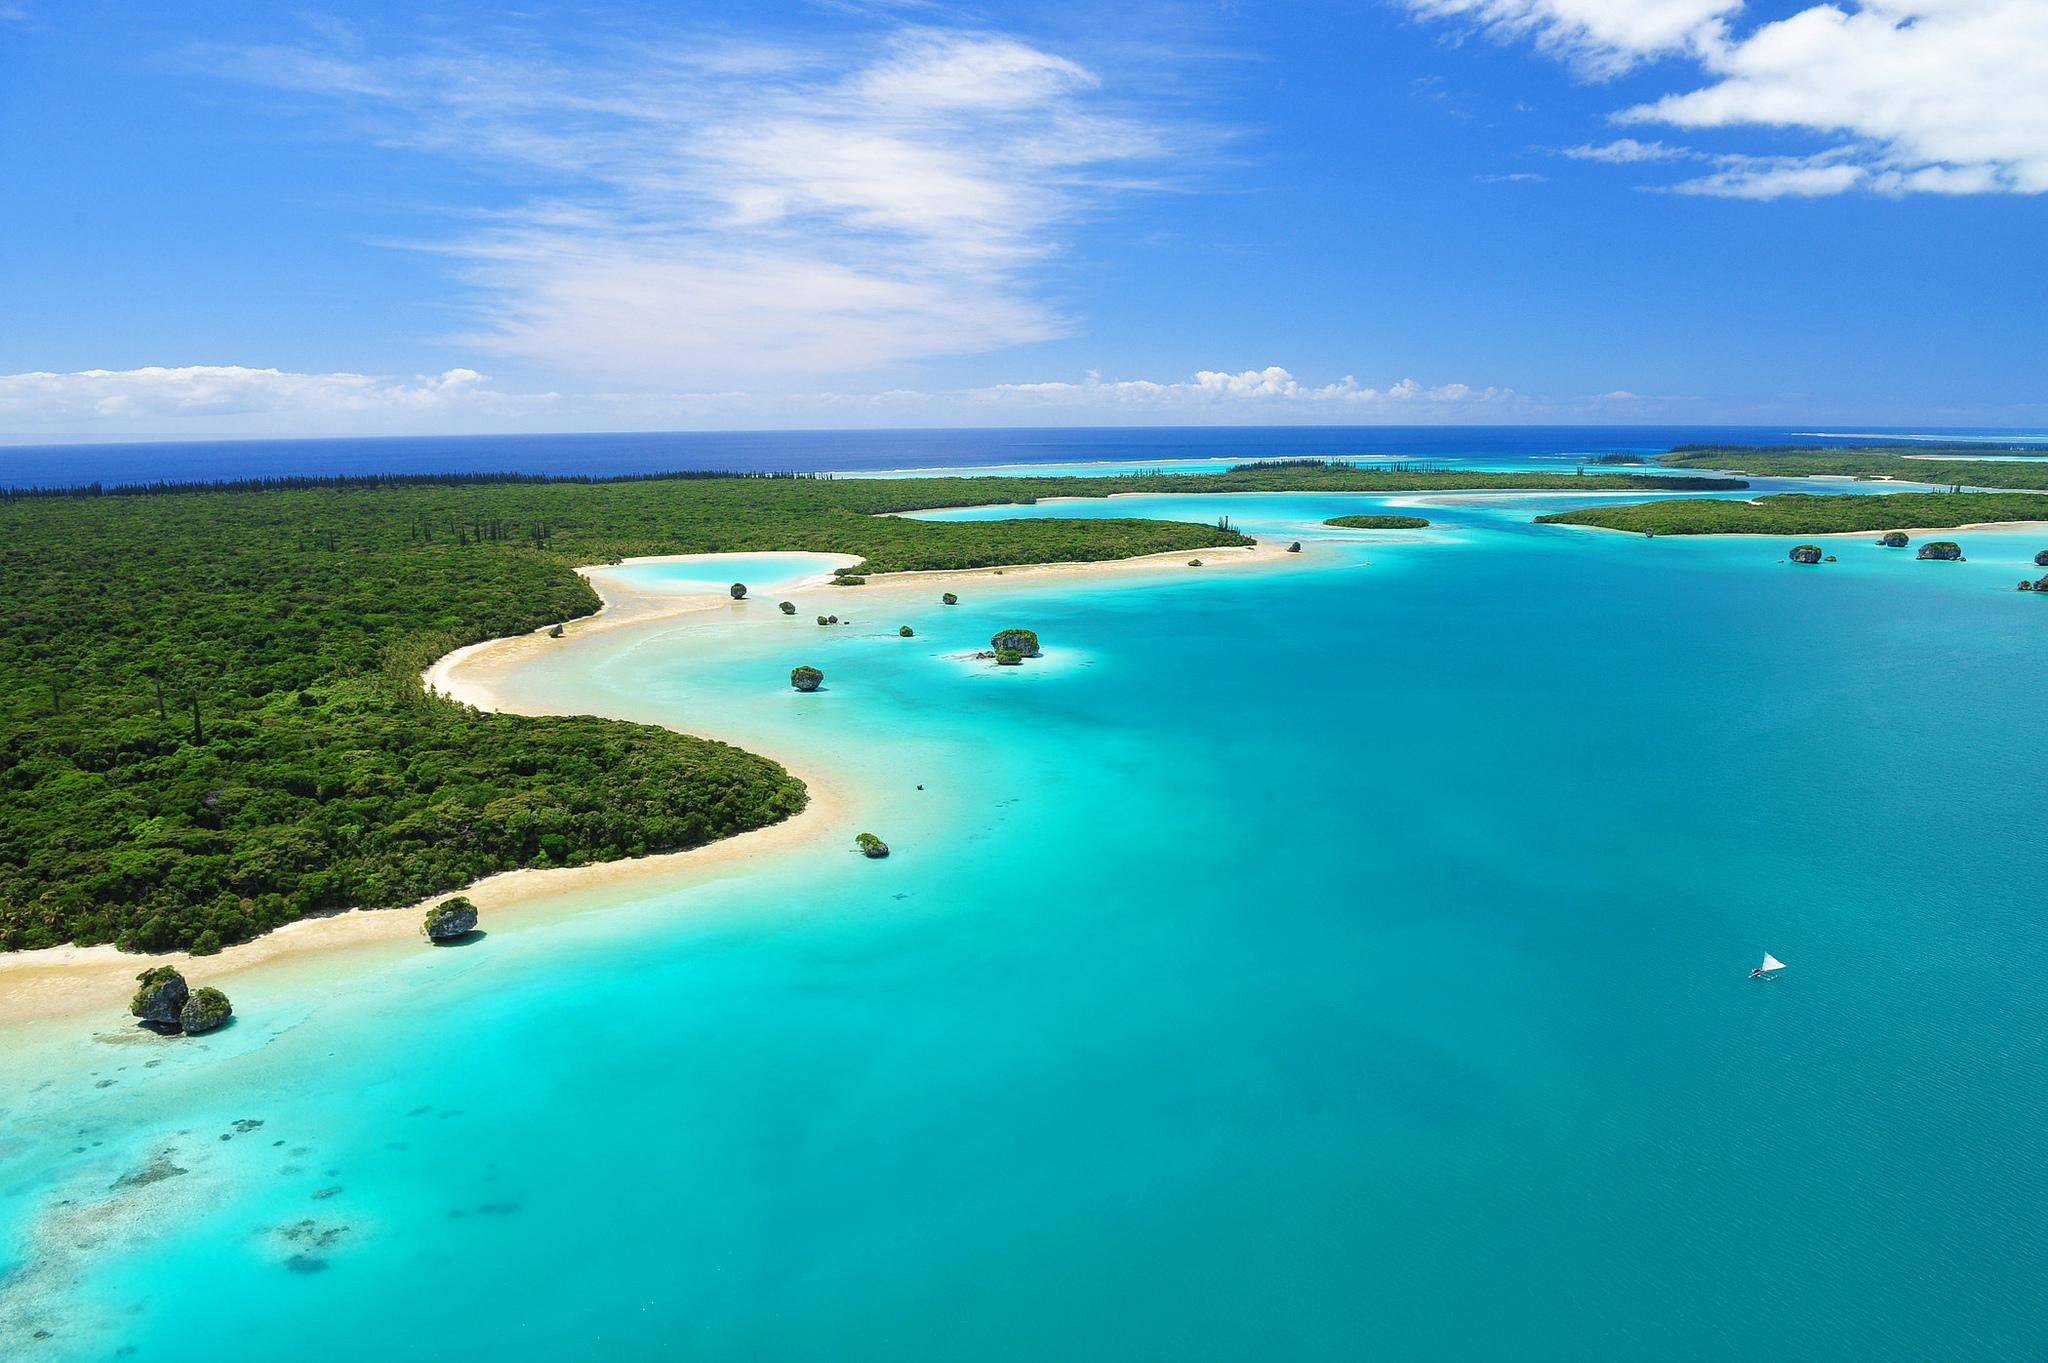 Islands of New Caledonia